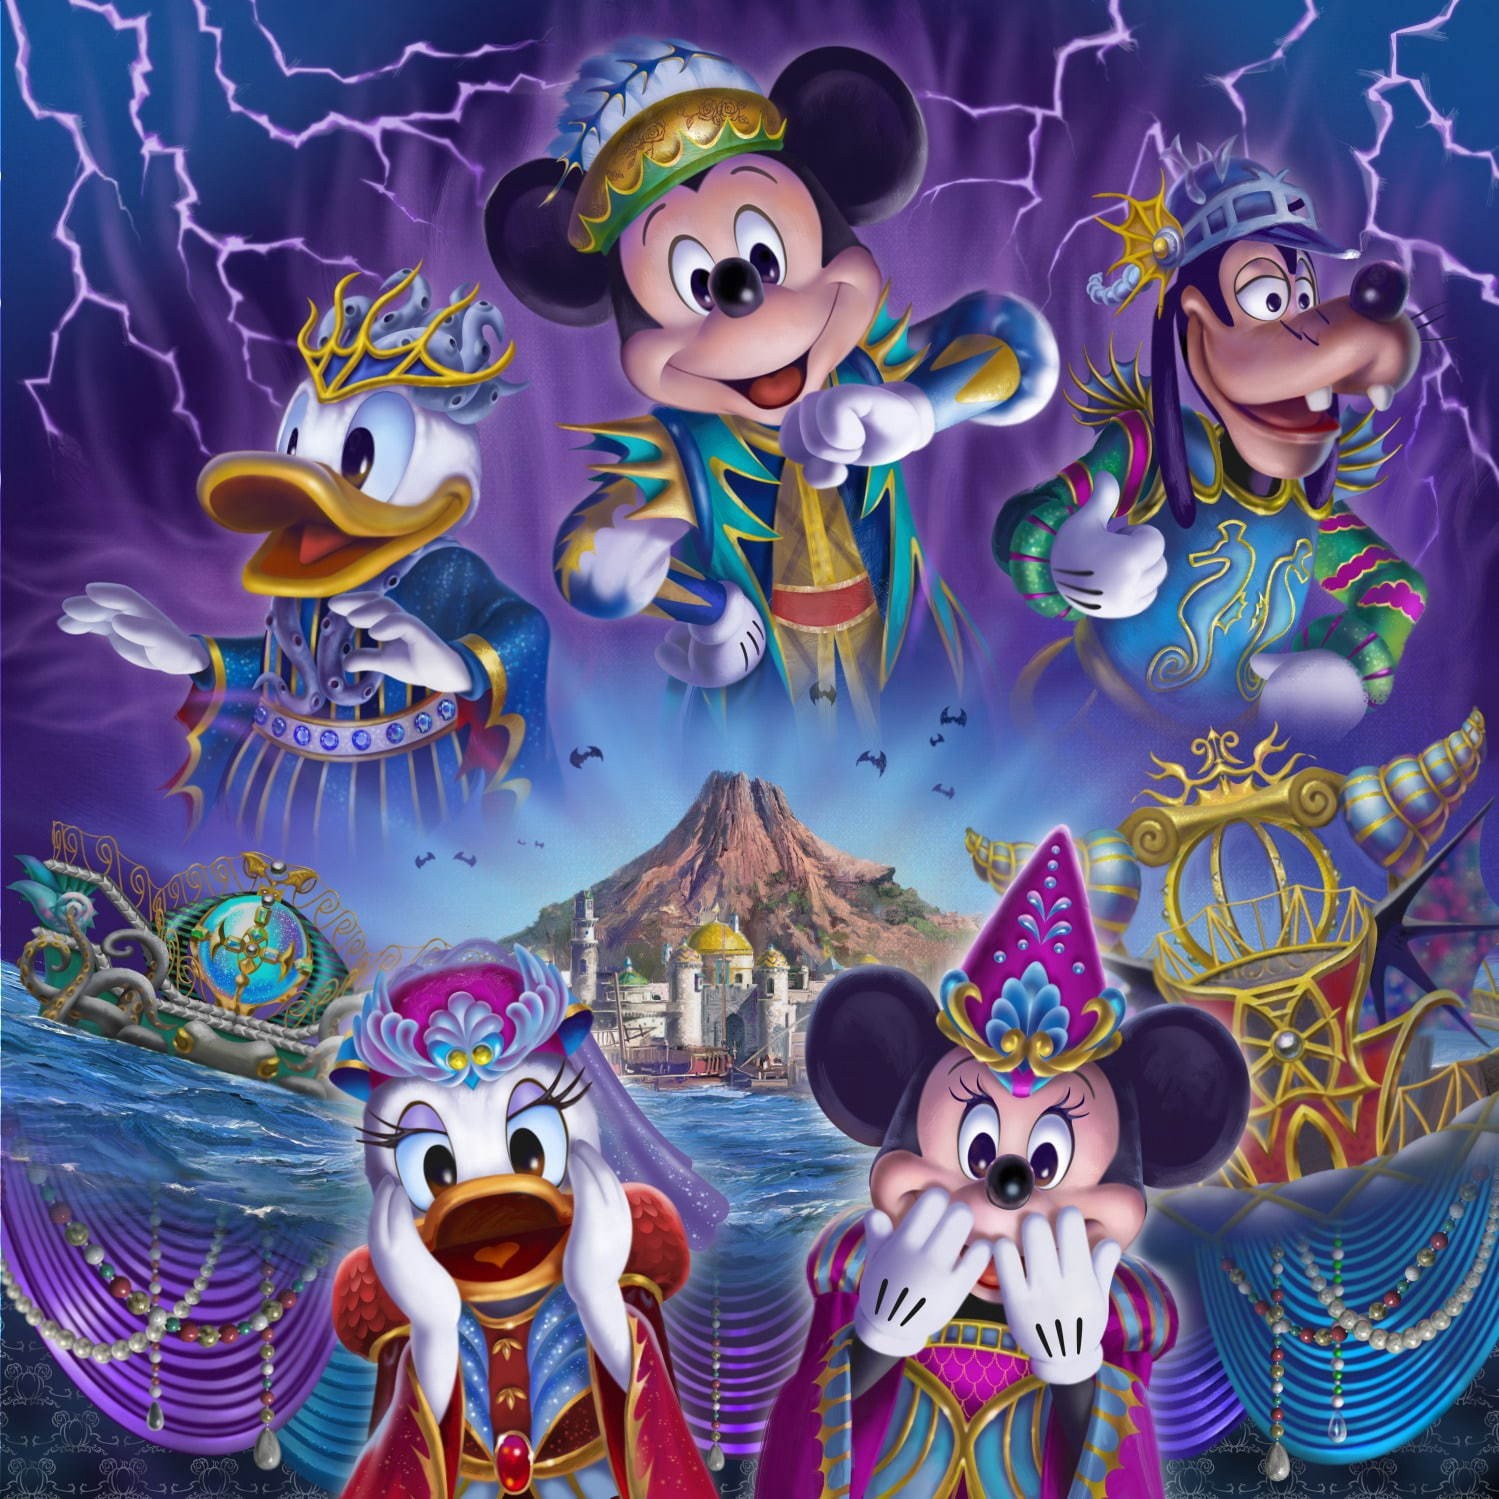 Halloween In Disney 2020 Disney Halloween 2020 at Tokyo Disney Resort   Japan Web Magazine